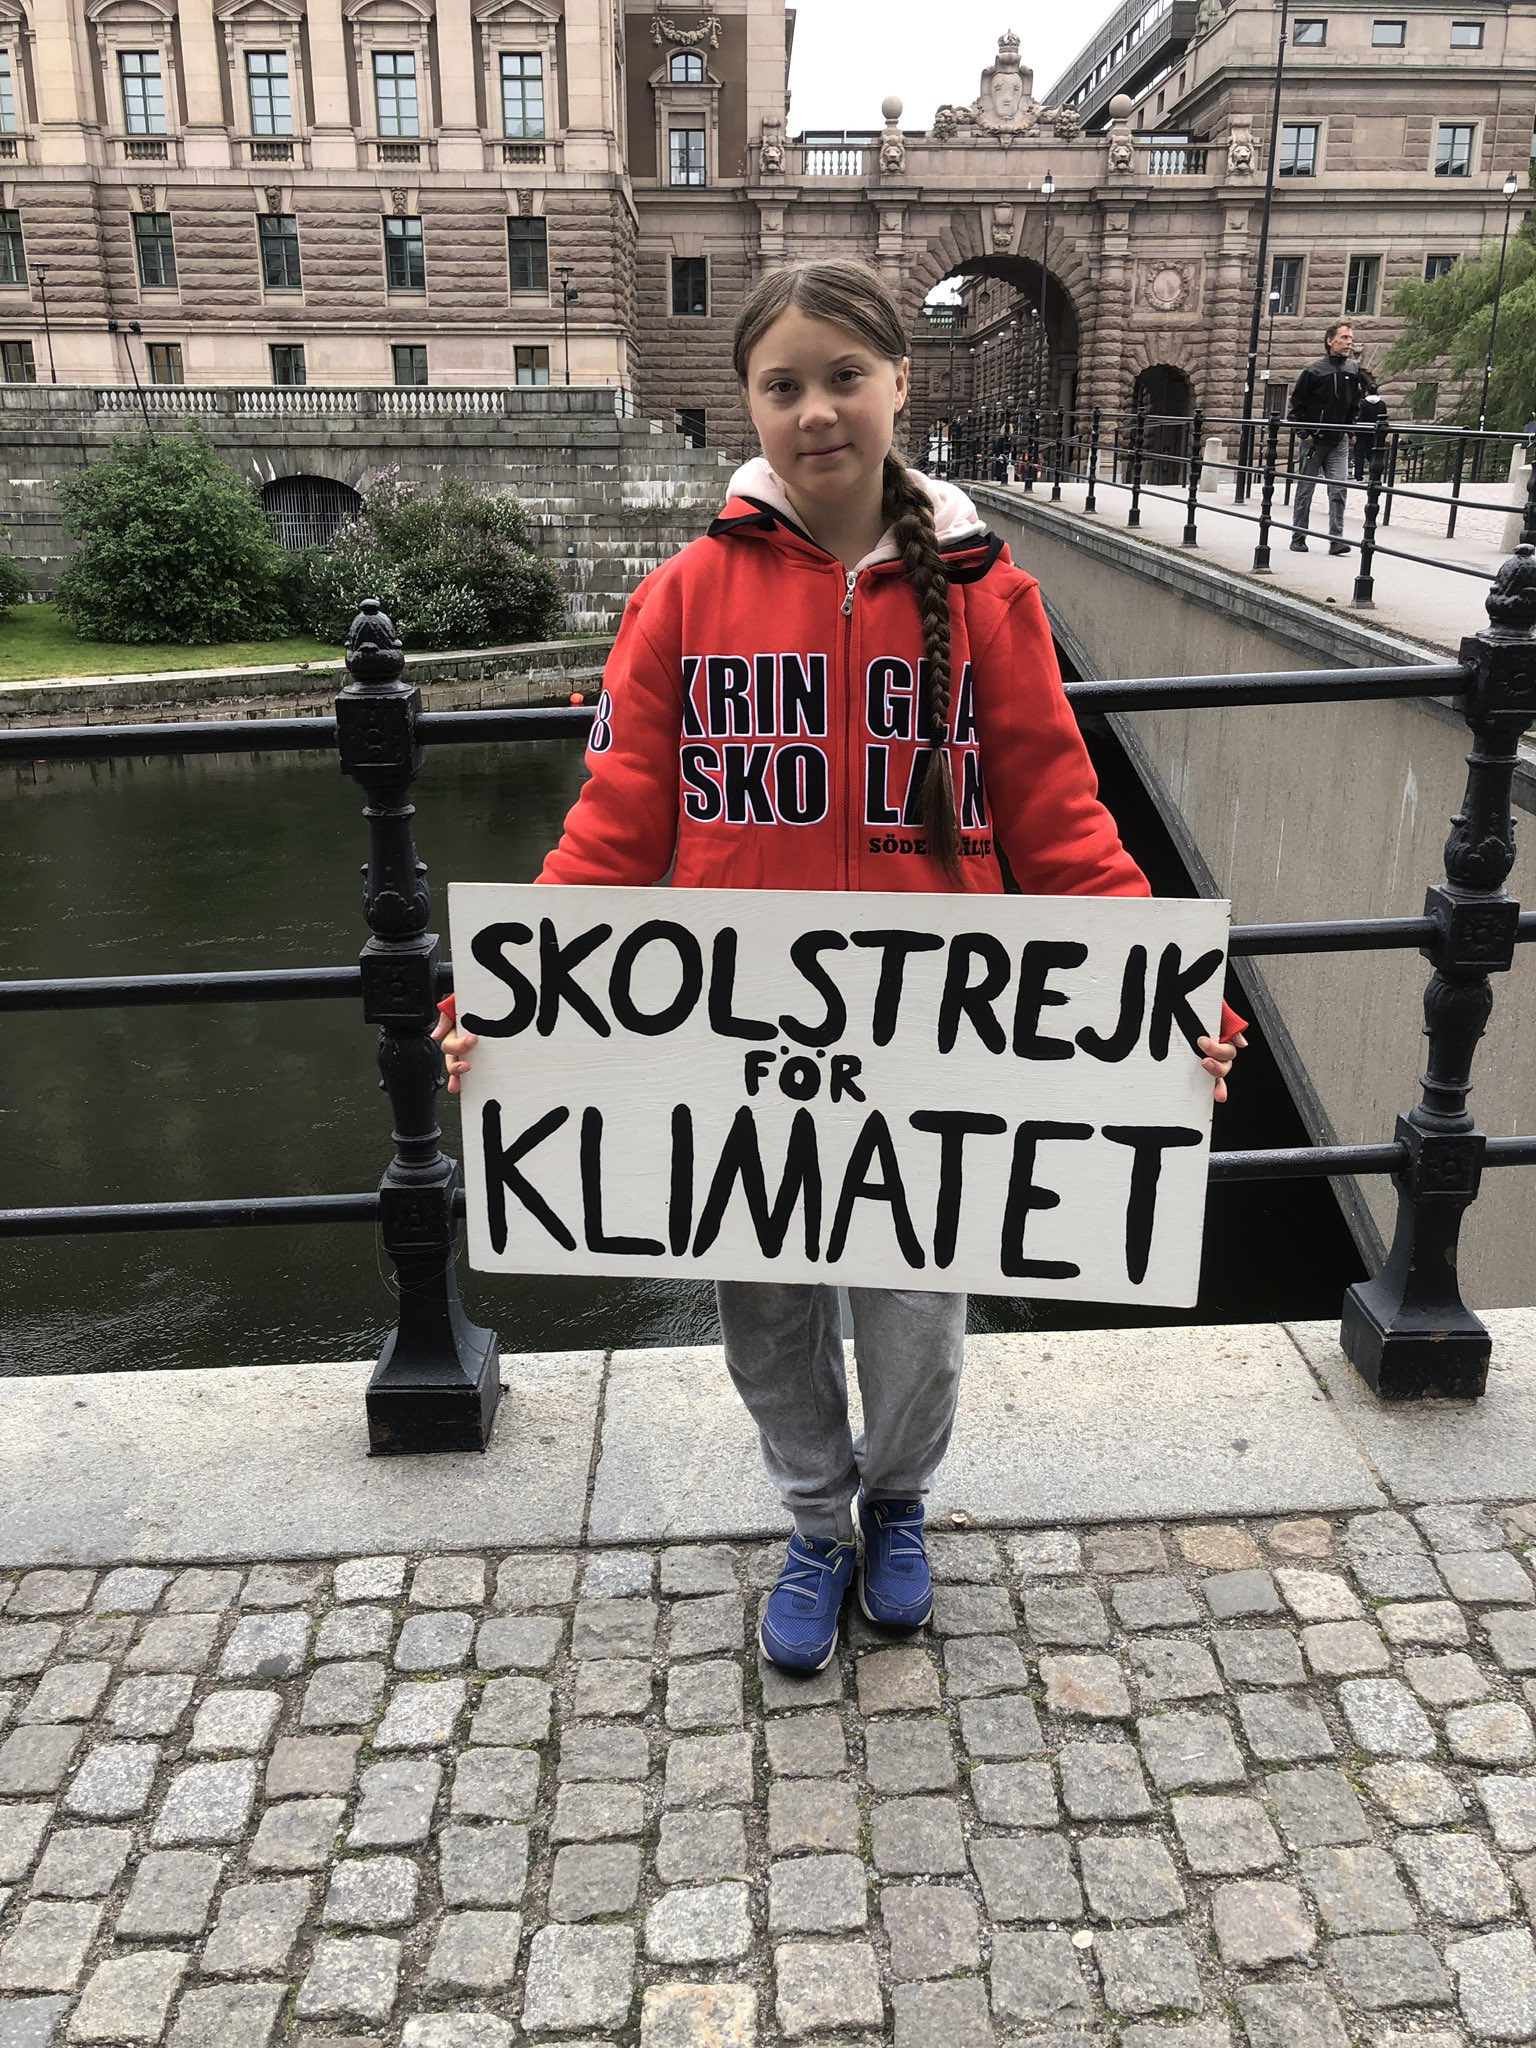 School strike week 43. And even though summer holidays are here and school is over, we go on. #fridaysforfuture #schoolstrike4climate #climatestrike https://t.co/cDatfs43ke